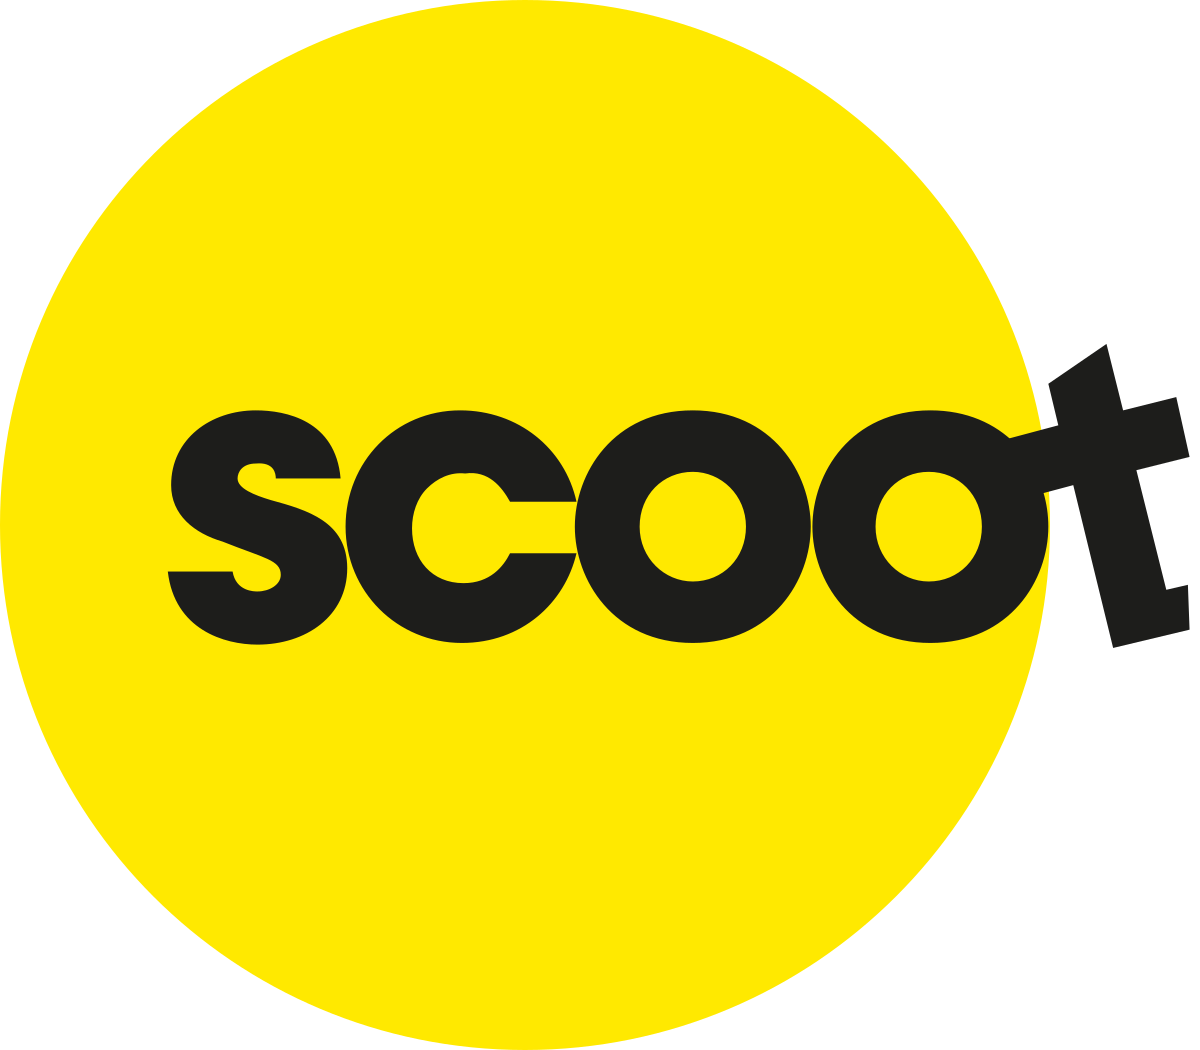 scoot airline logo